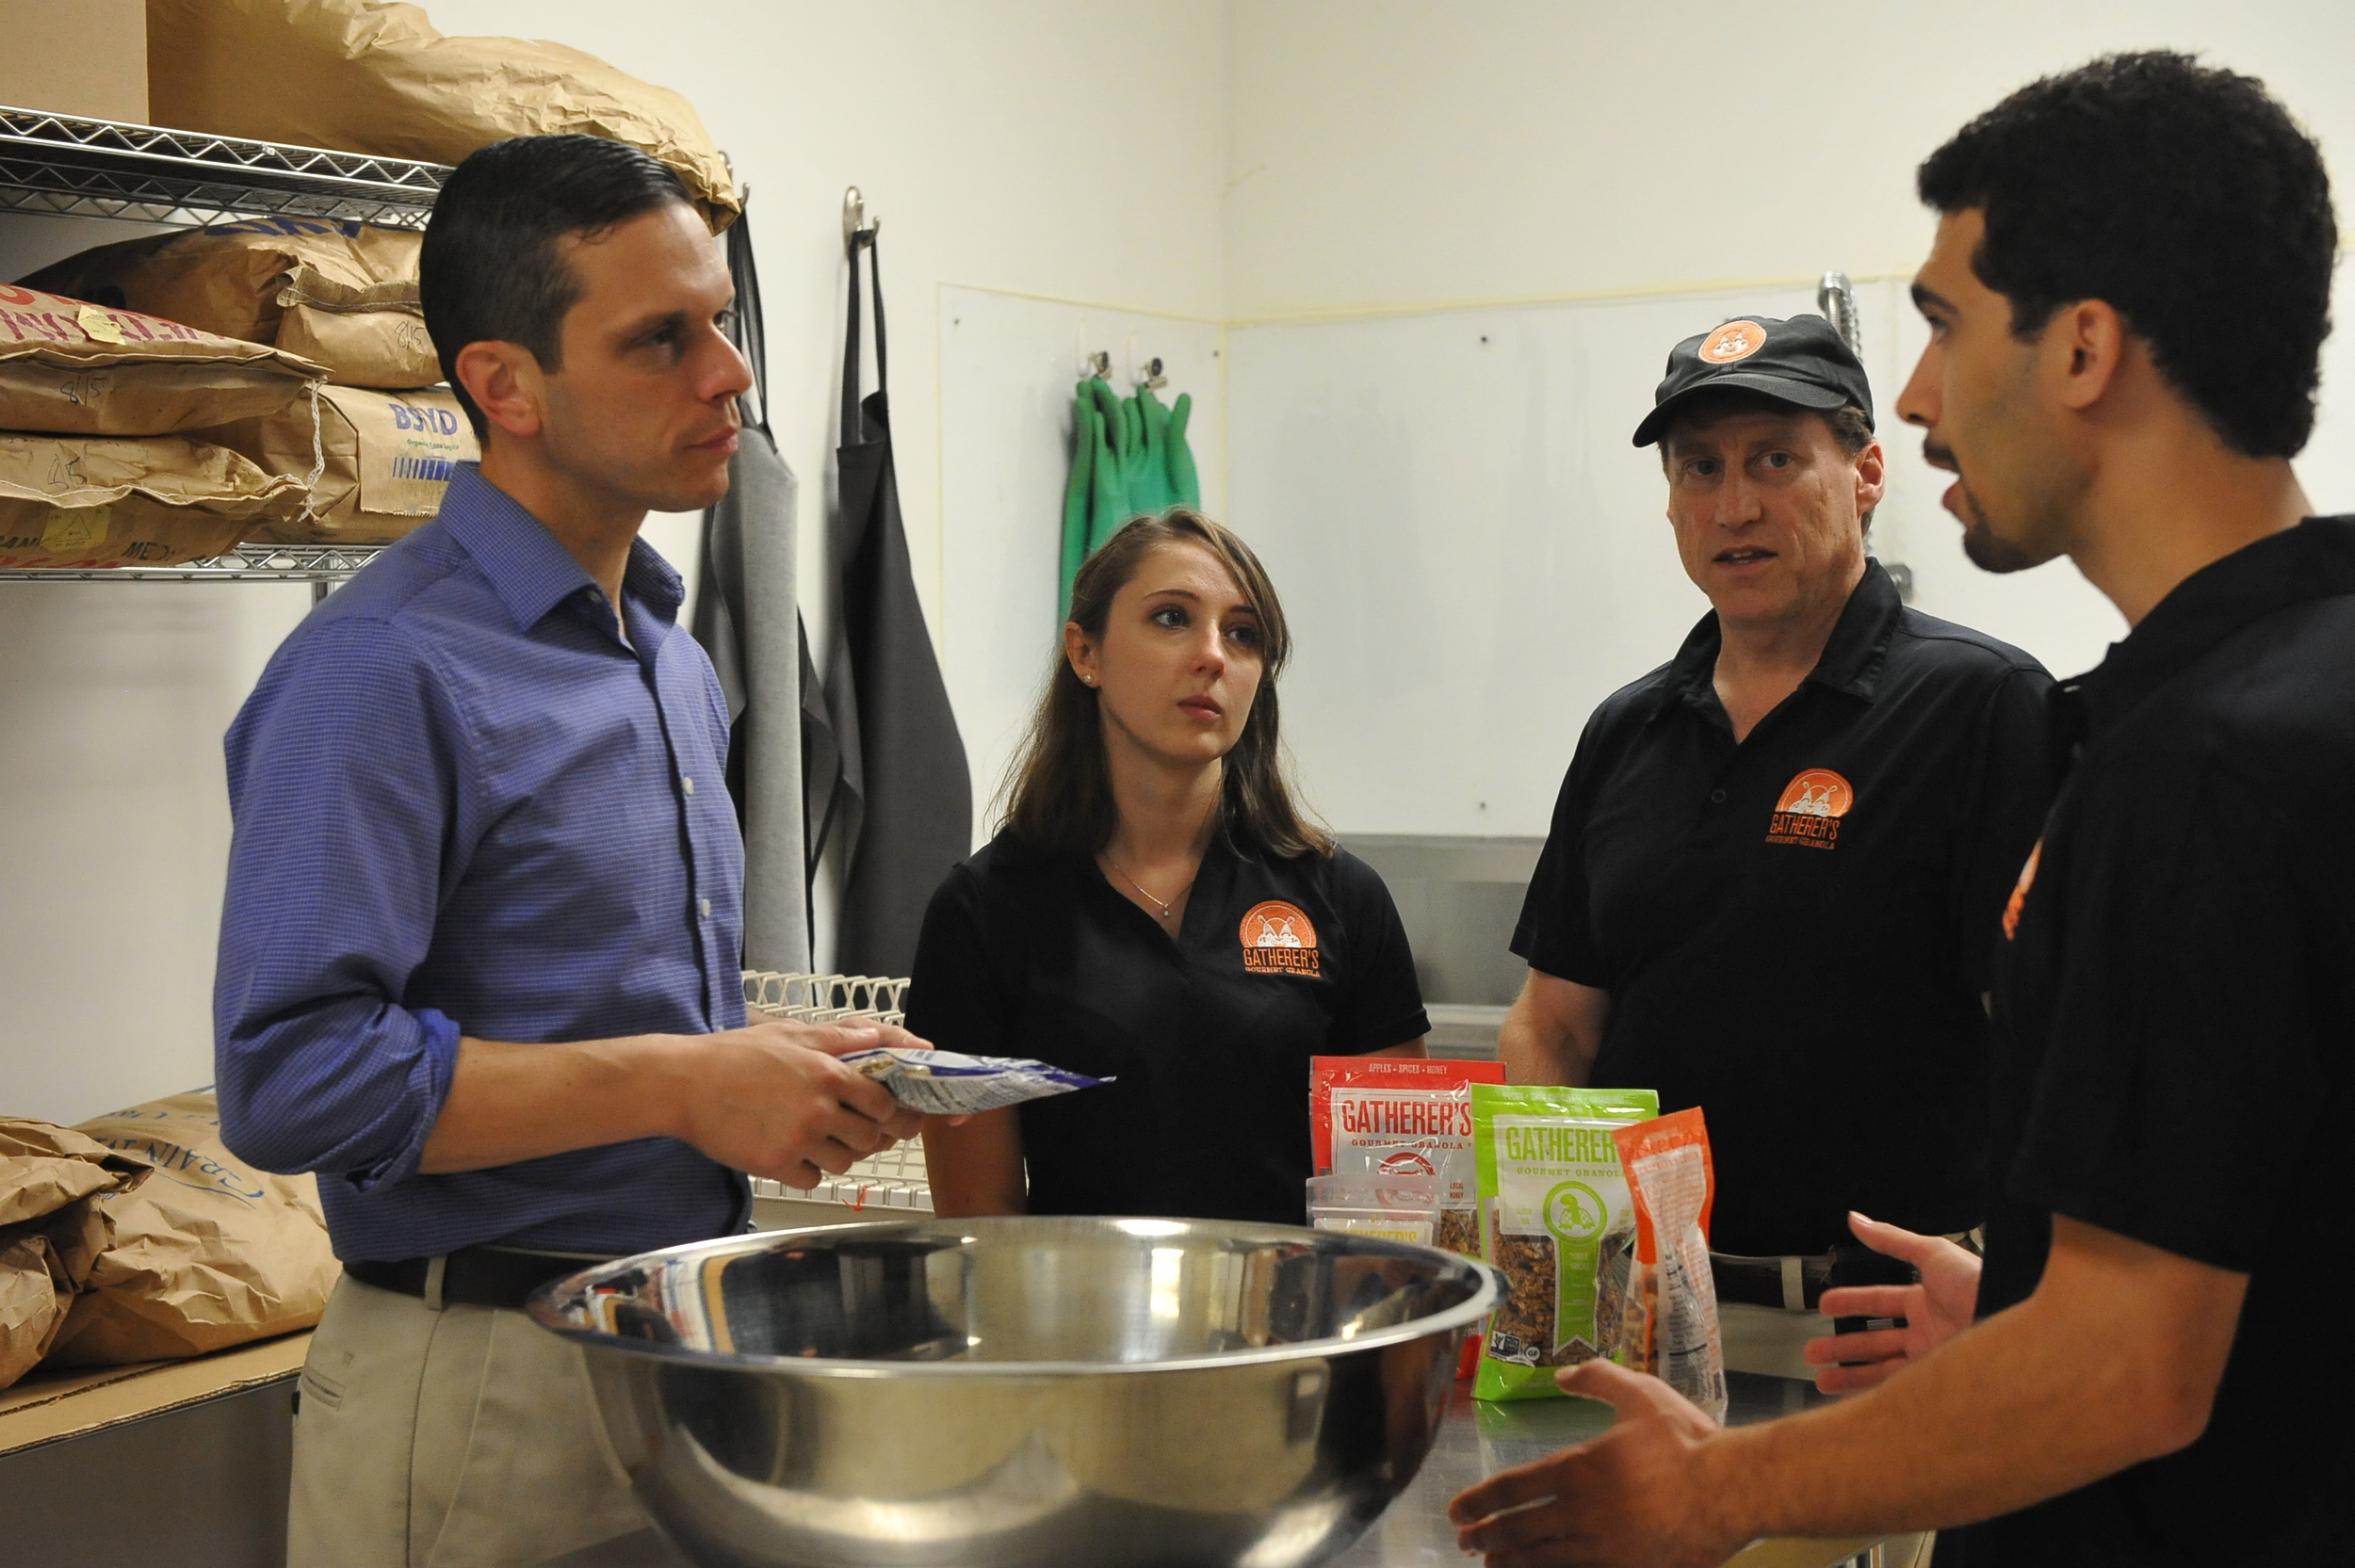 Assemblyman Angelo Santabarbara talks with the owner of Gatherer's Granola and his staff about how he support their business.